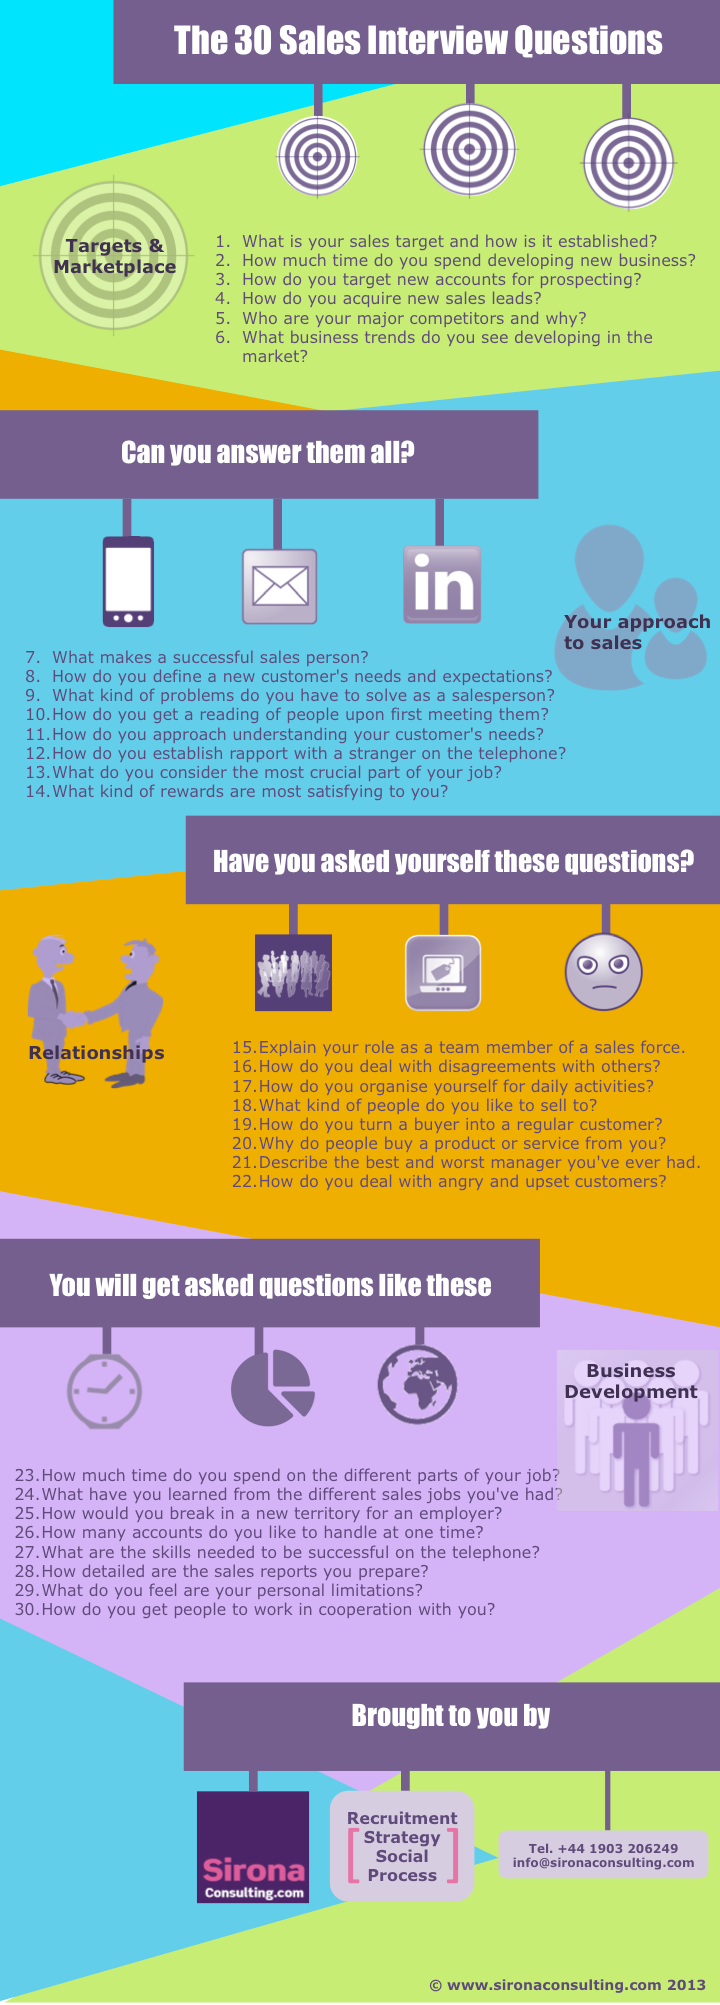 The 30 Sales Interview Questions [Infographic]   Sirona Says